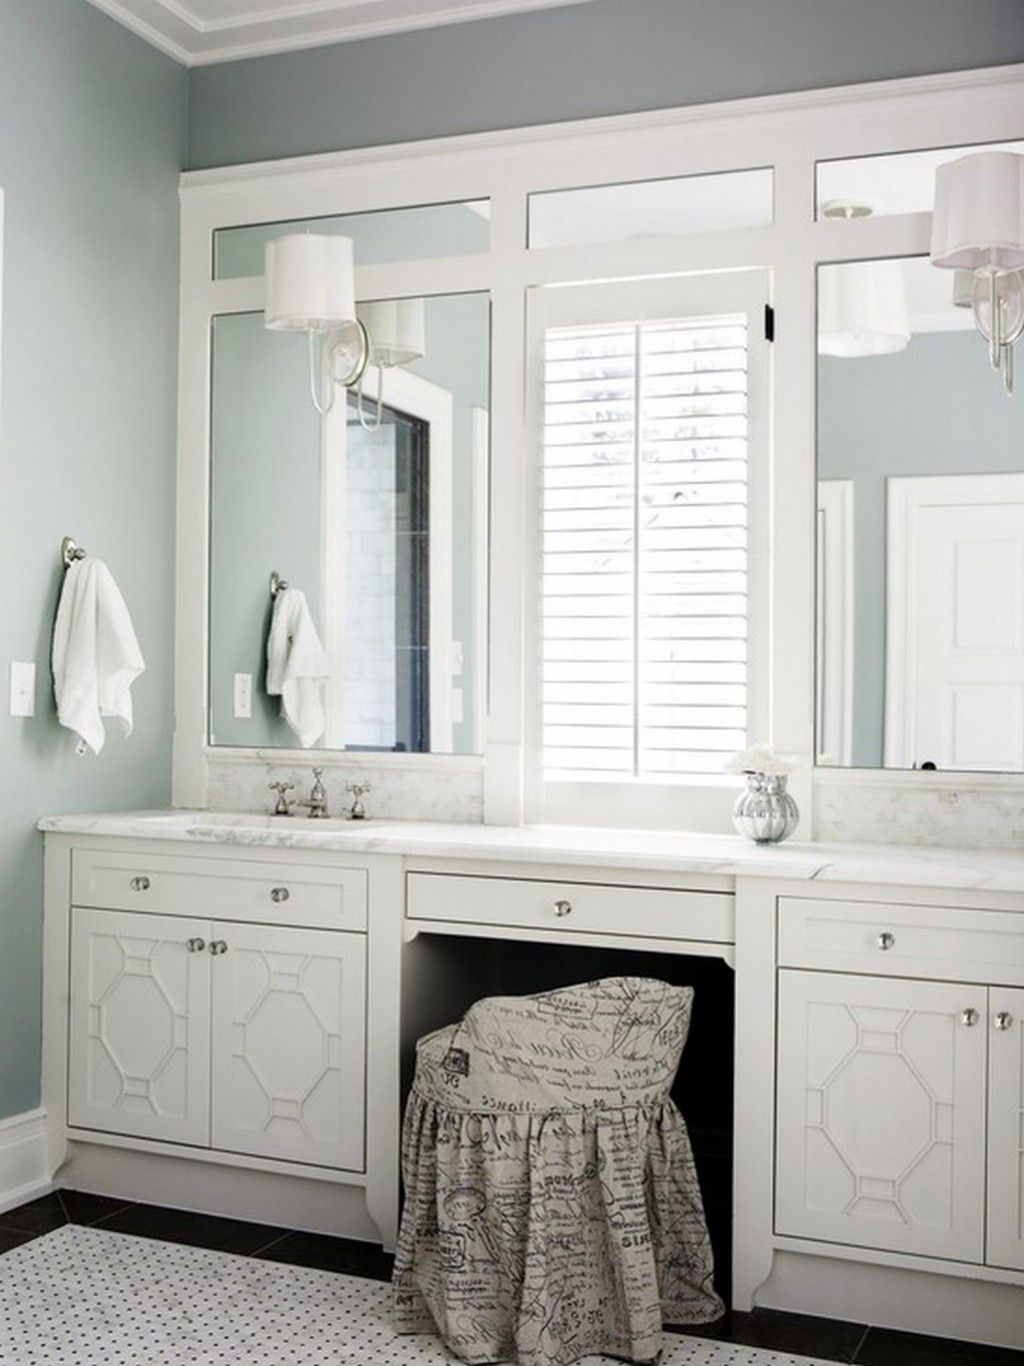 Bathroom Vanity Lights Mounted On Trimmed Out Plate Mirror